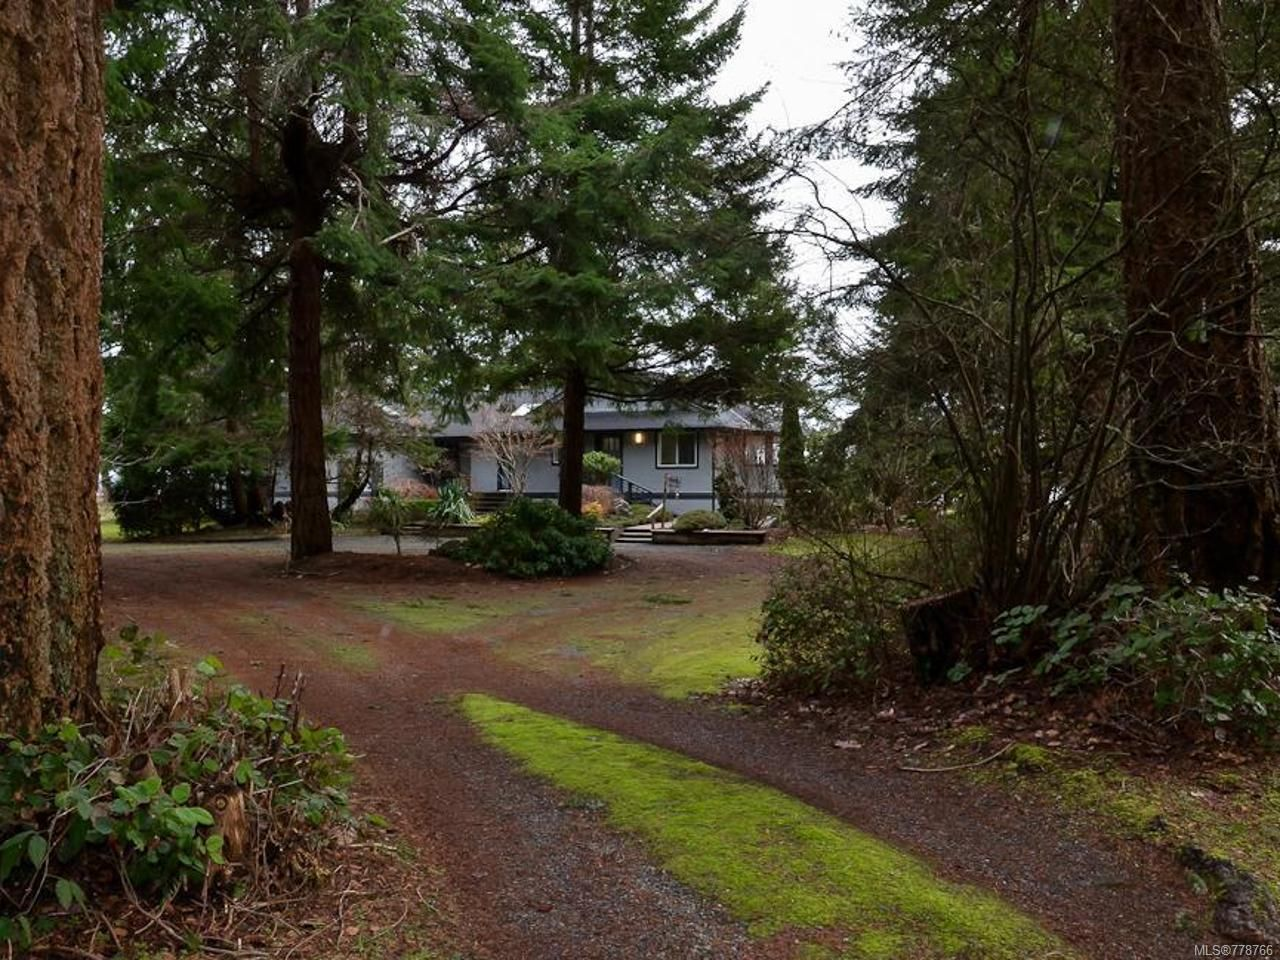 Main Photo: 6425 W Island Hwy in BOWSER: PQ Bowser/Deep Bay House for sale (Parksville/Qualicum)  : MLS®# 778766